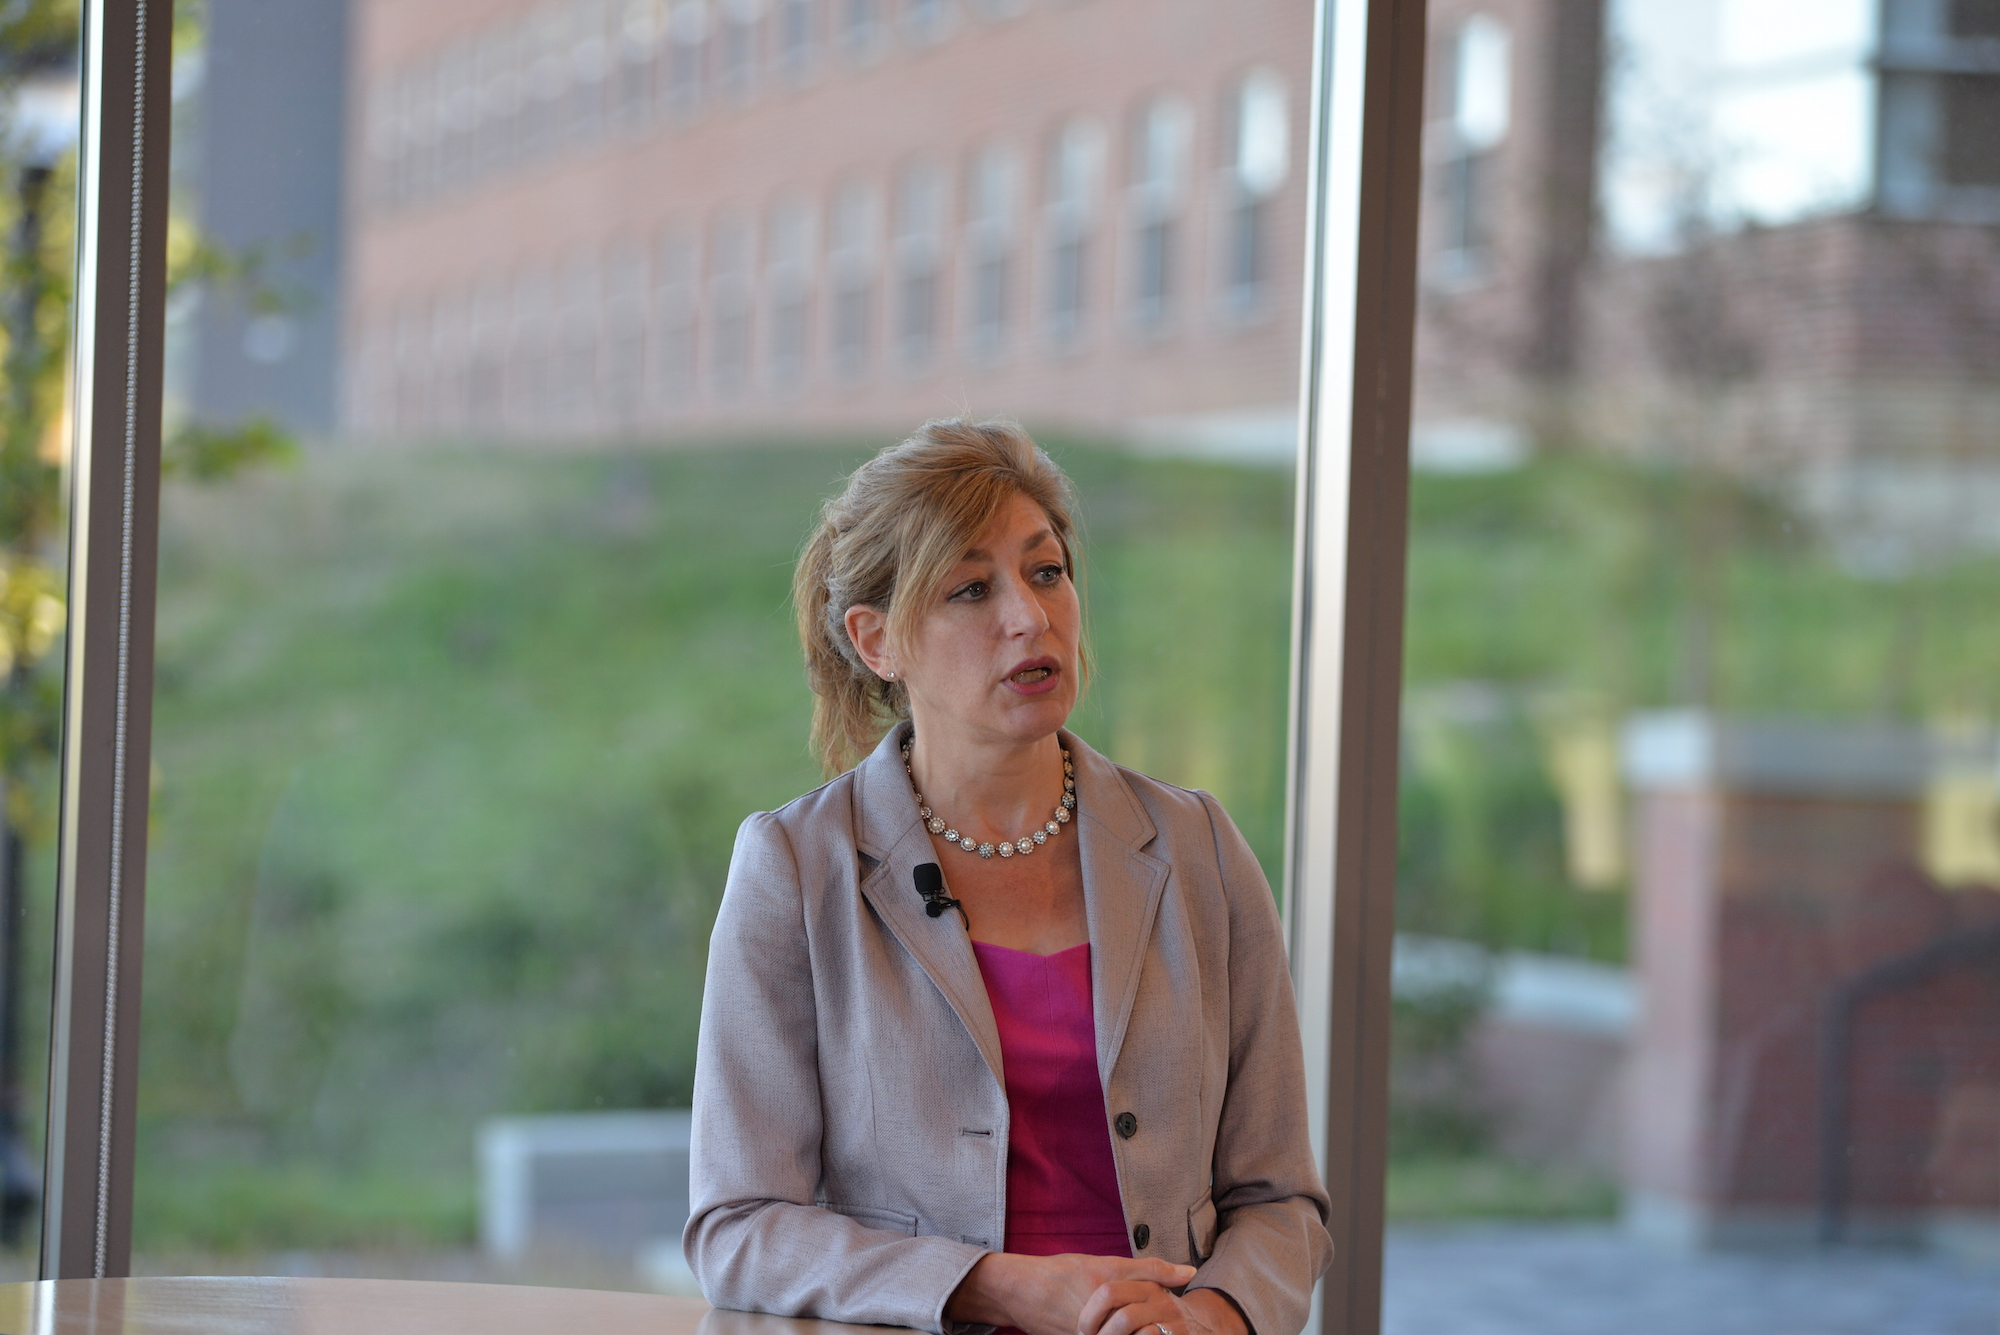 Susan Herbst announced she would advocate for a committee that explores how President Trump's ban on immigration will affect UConn students and faculty. (File photo/The Daily Campus)